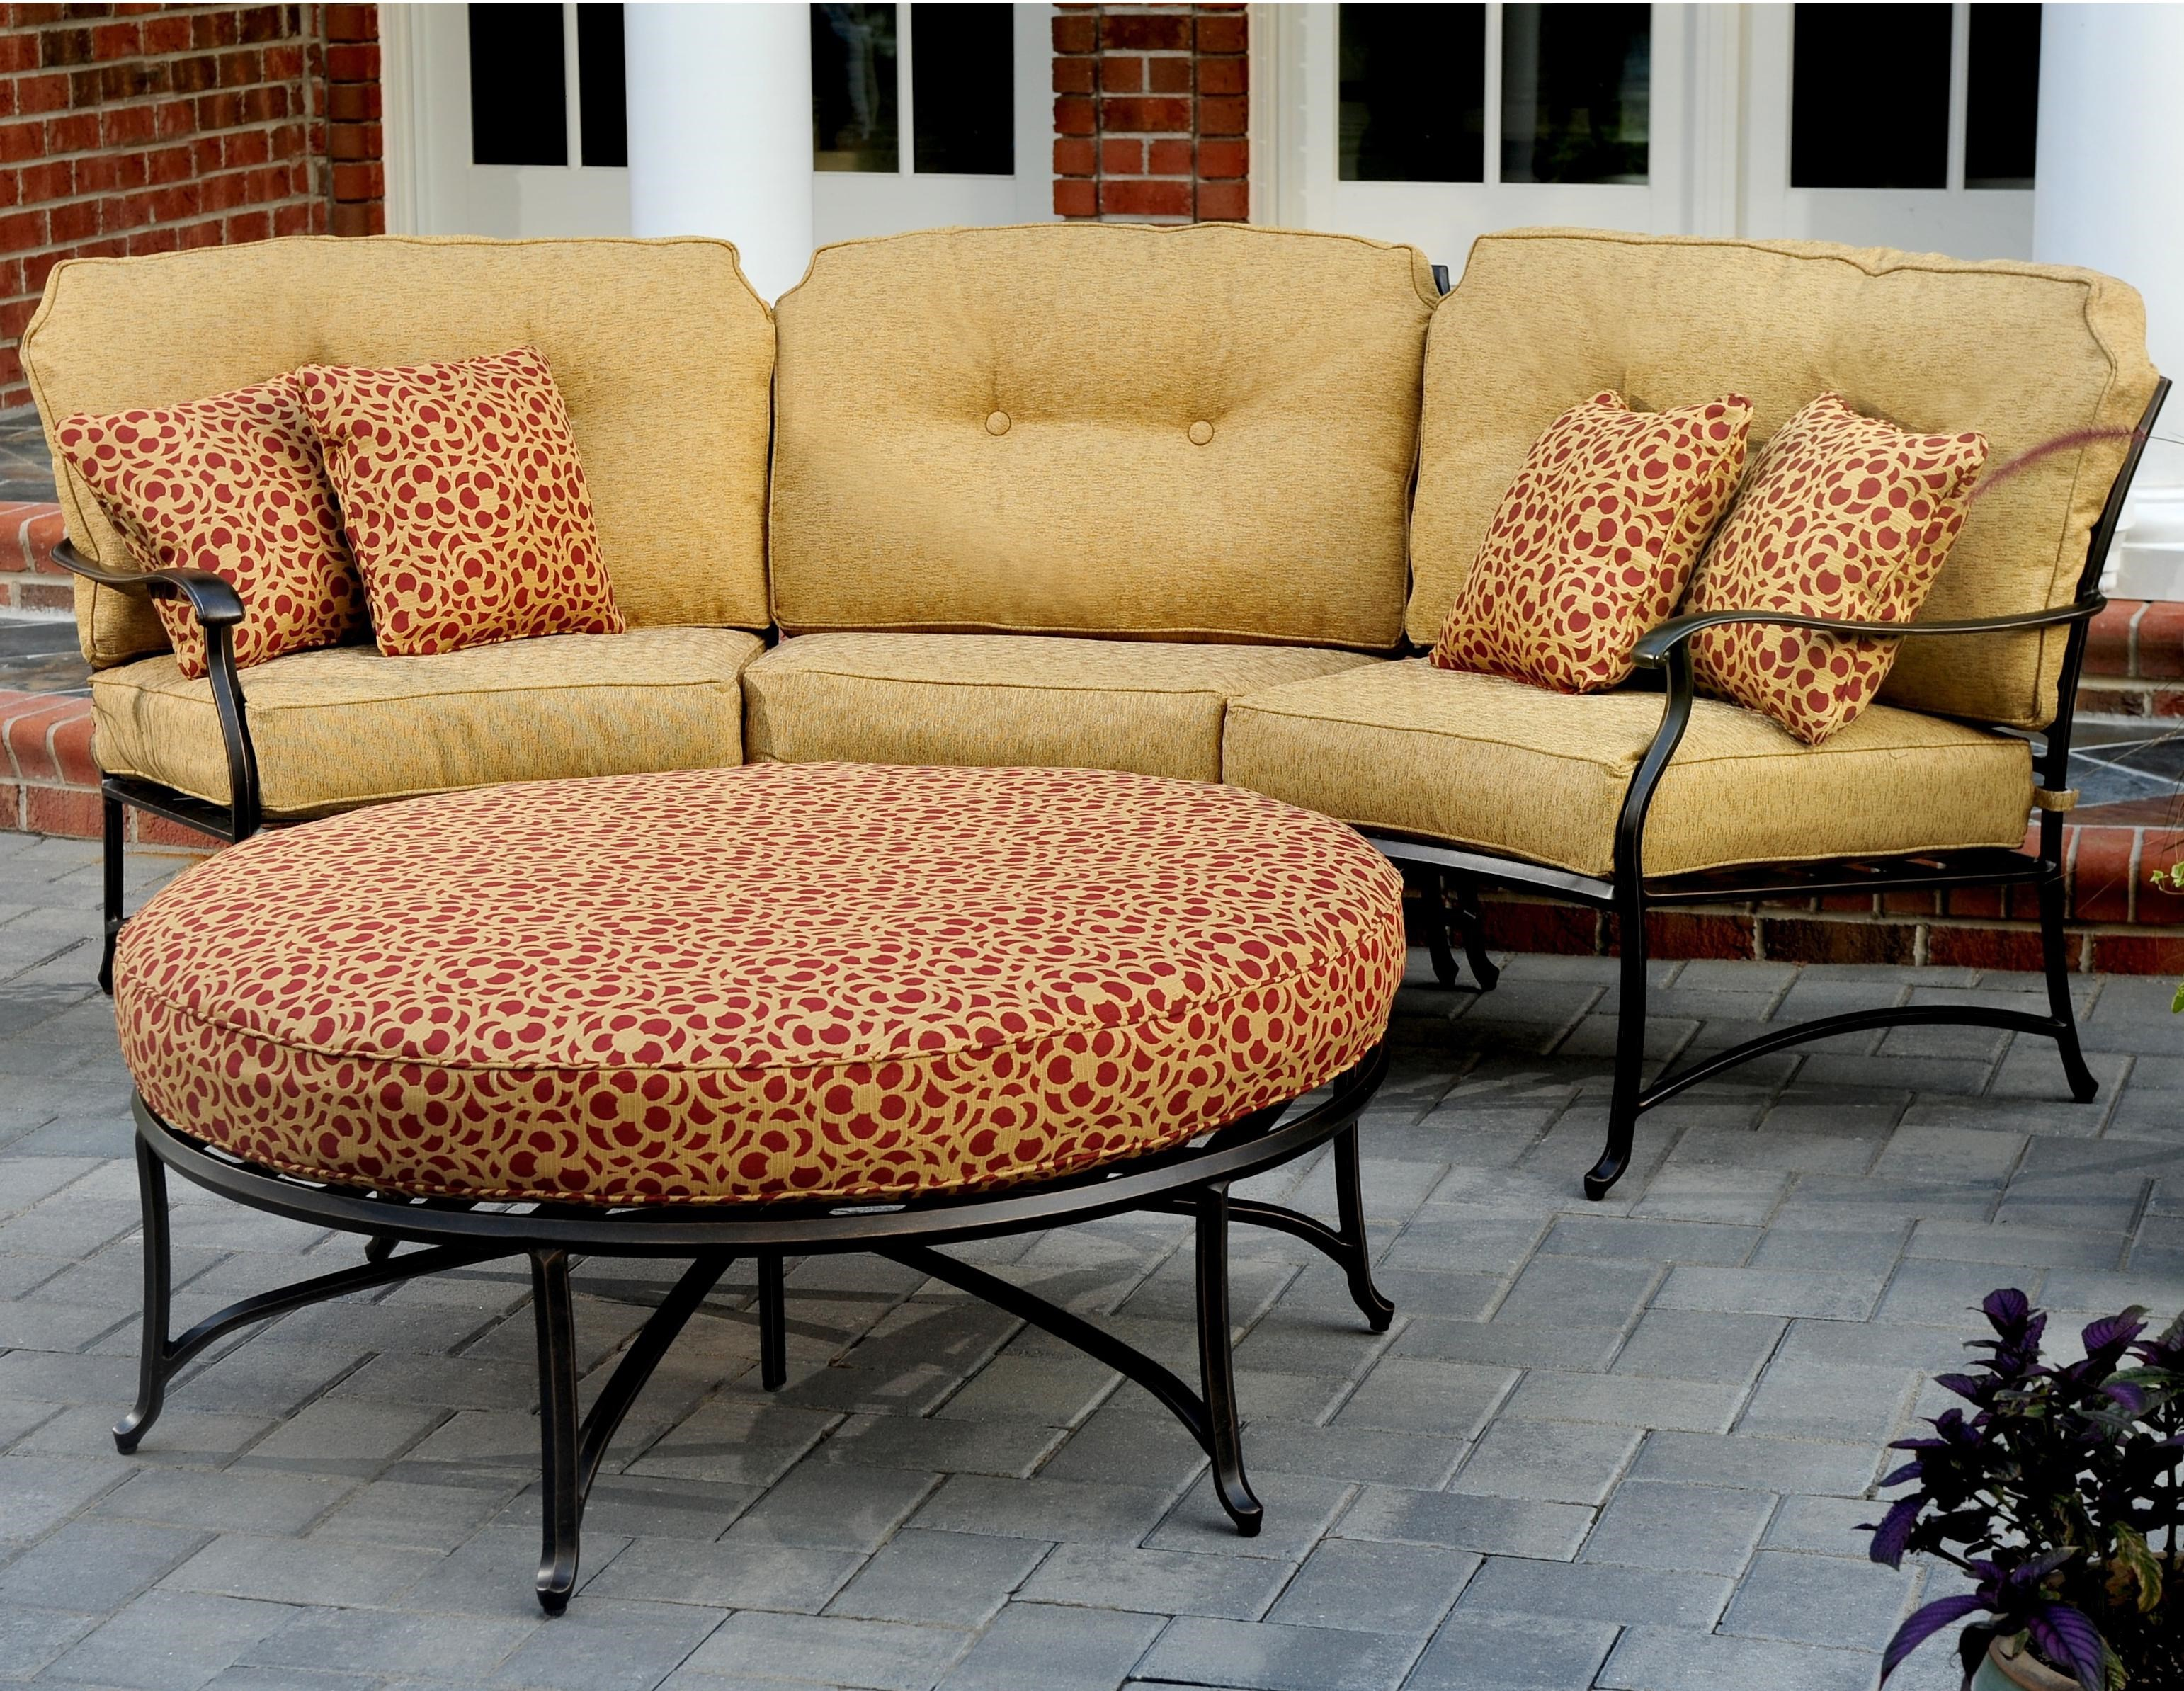 Agio Heritage Outdoor Semi-Round Sectional Sofa  sc 1 st  Wilsonu0027s Furniture : semi round sectional sofa - Sectionals, Sofas & Couches